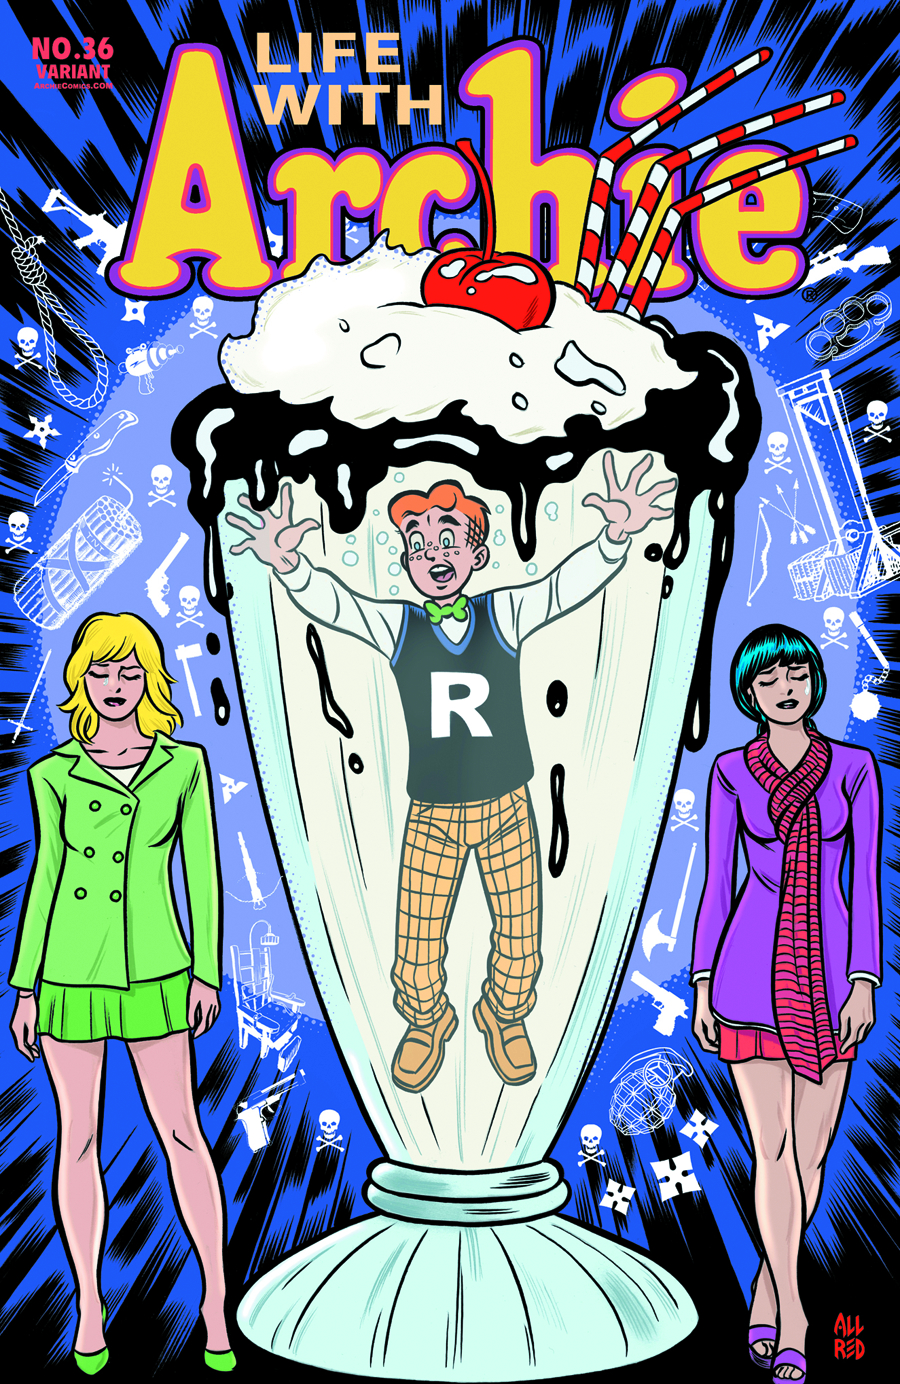 LIFE WITH ARCHIE COMIC #36 MIKE ALLRED CVR